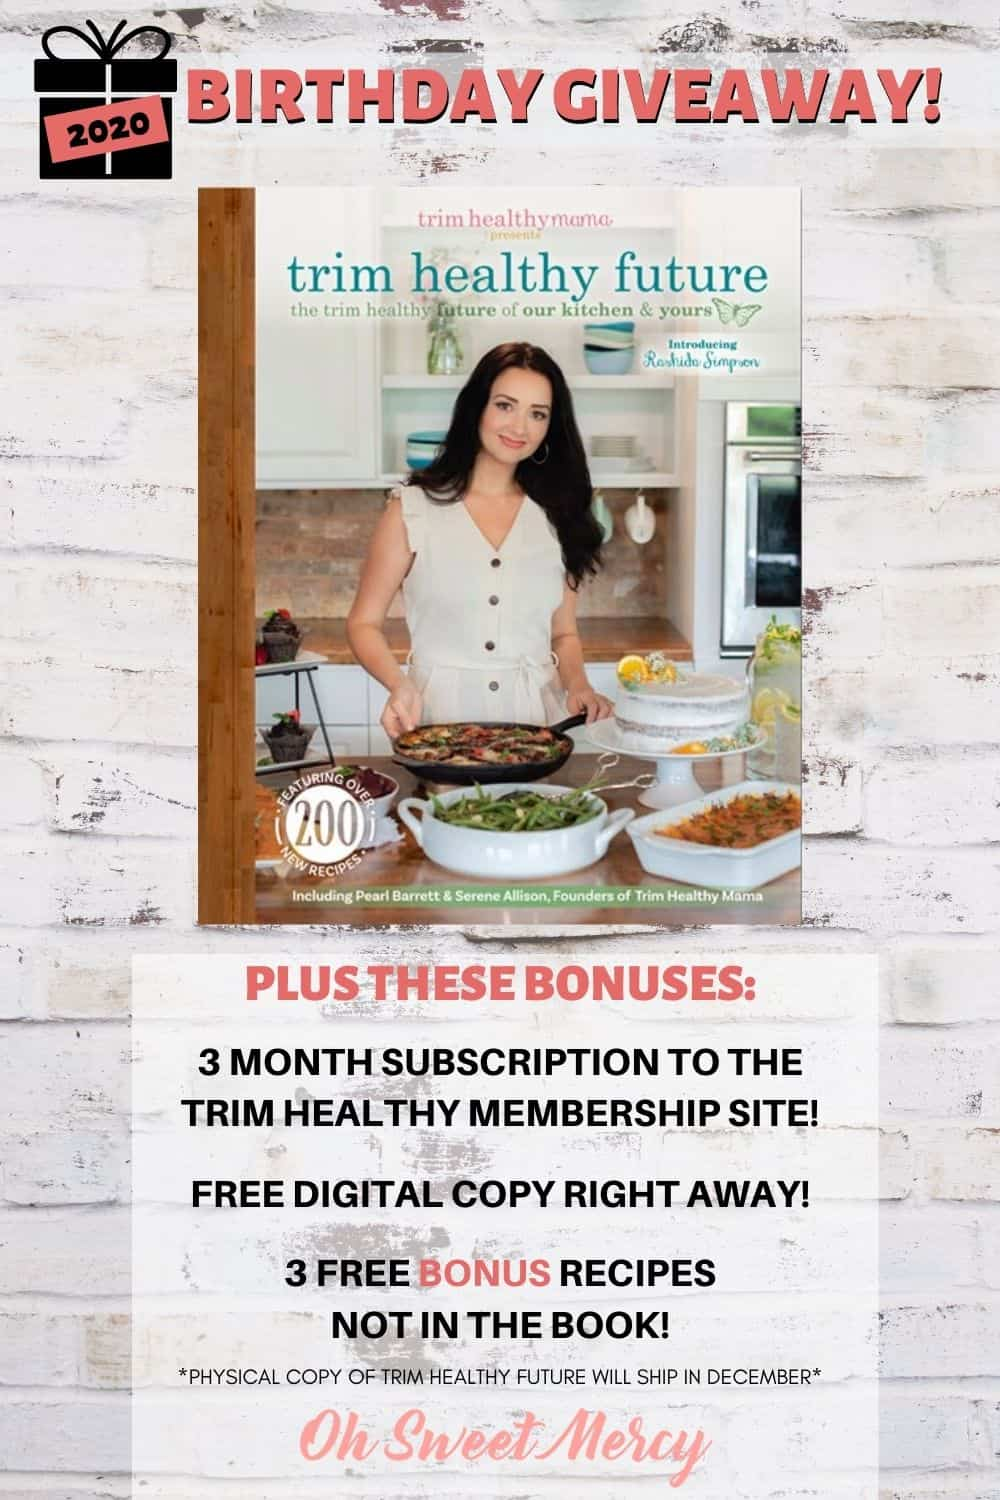 It's my birthday and I'm doing a Trim Healthy Future Giveaway! Win a copy of this new THM cookbook plus 3 terrific bonuses: Free 3 month subscription to Trim Healthy Membership Site, Free digital copy right away (physical copy ships in December 2020), 3 bonus recipes not in the book. Giveaway runs from 11-13-20 to 11-27-20, read post for details and to enter. #giveaway #giveaways #thm #thmgiveaway #trimhealthyfuture @ohsweetmercy